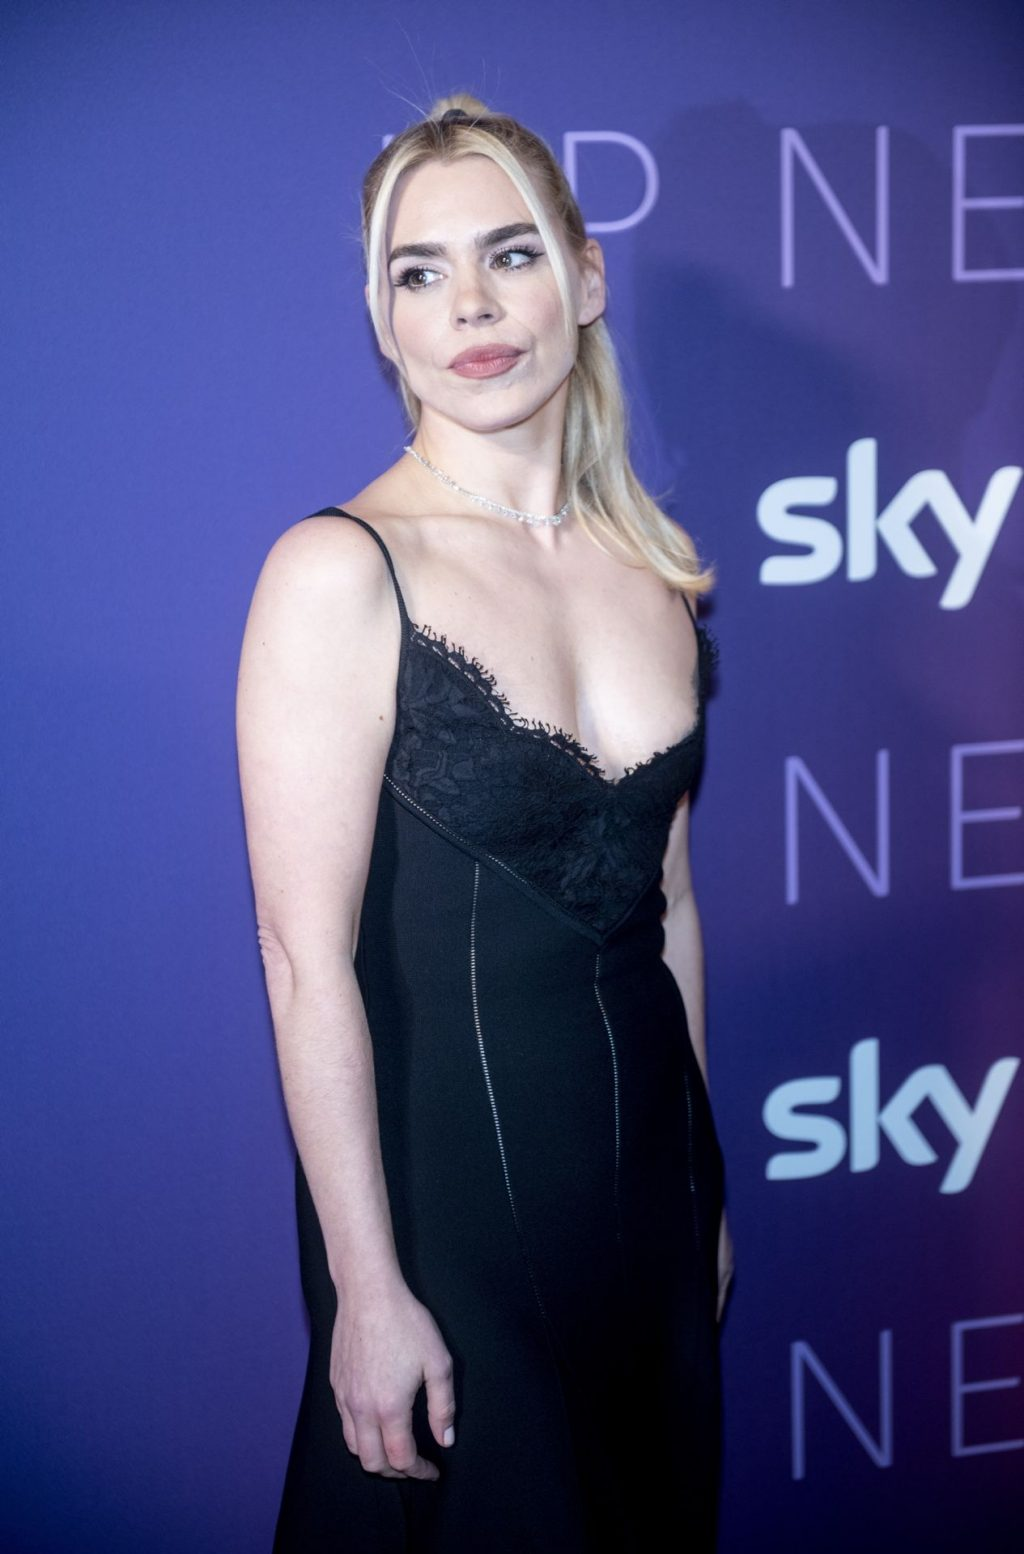 Billie Piper Sexy The Fappening Blog 35 1024x1554 - Billie Piper Smiles at the Sky Up Next Event (67 Photos)